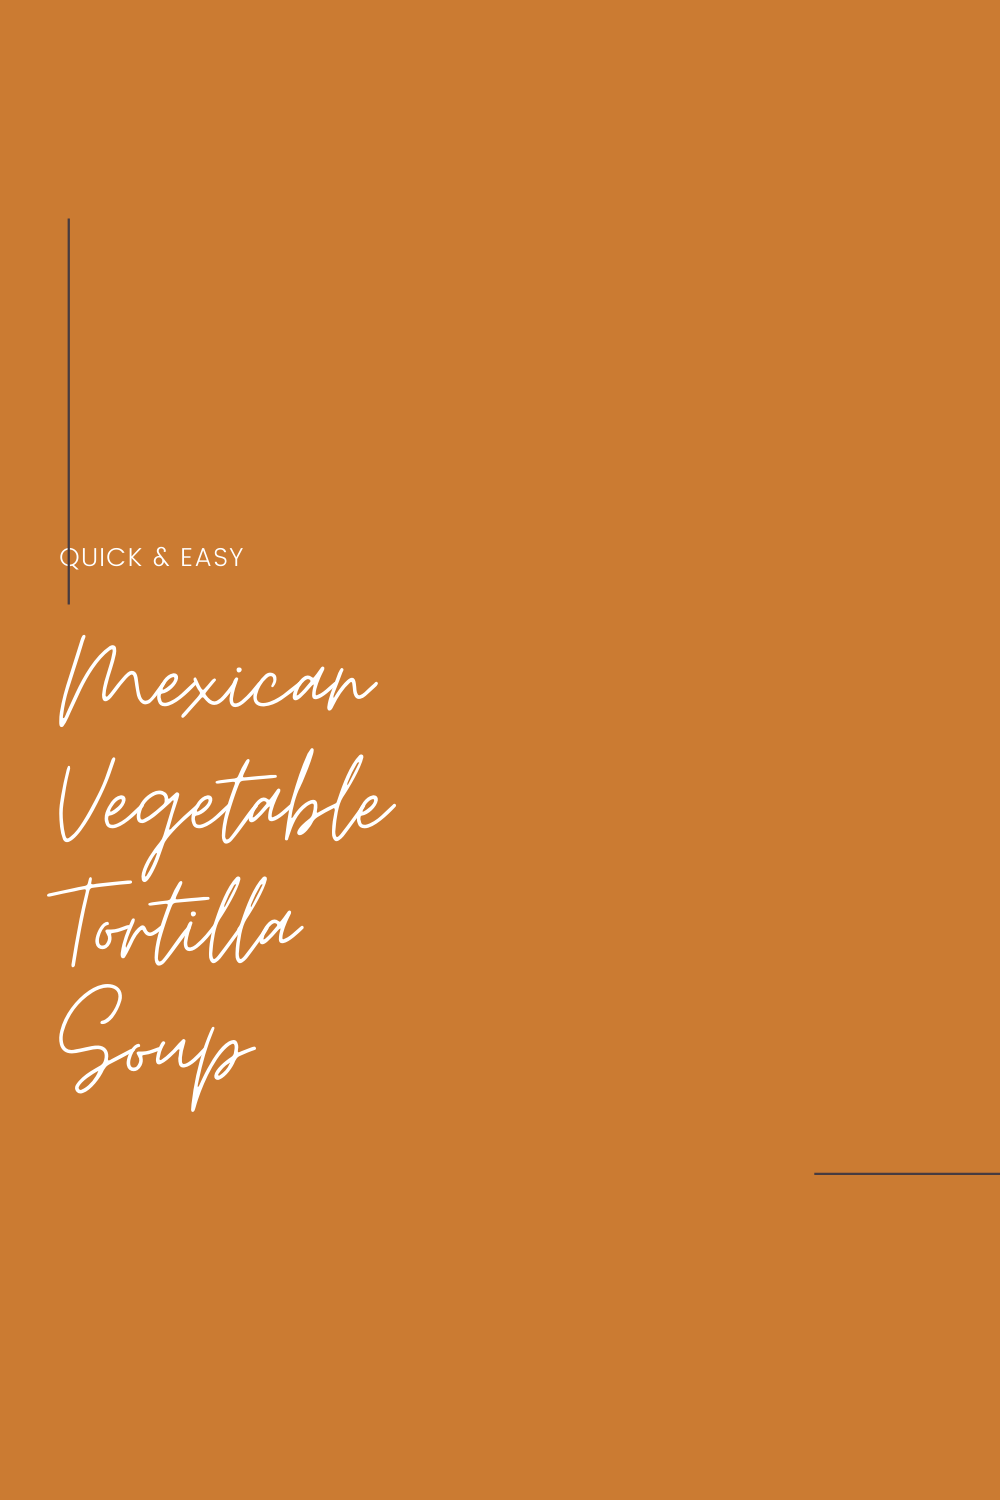 Quick and Easy Mexican Vegetable Tortilla Soup